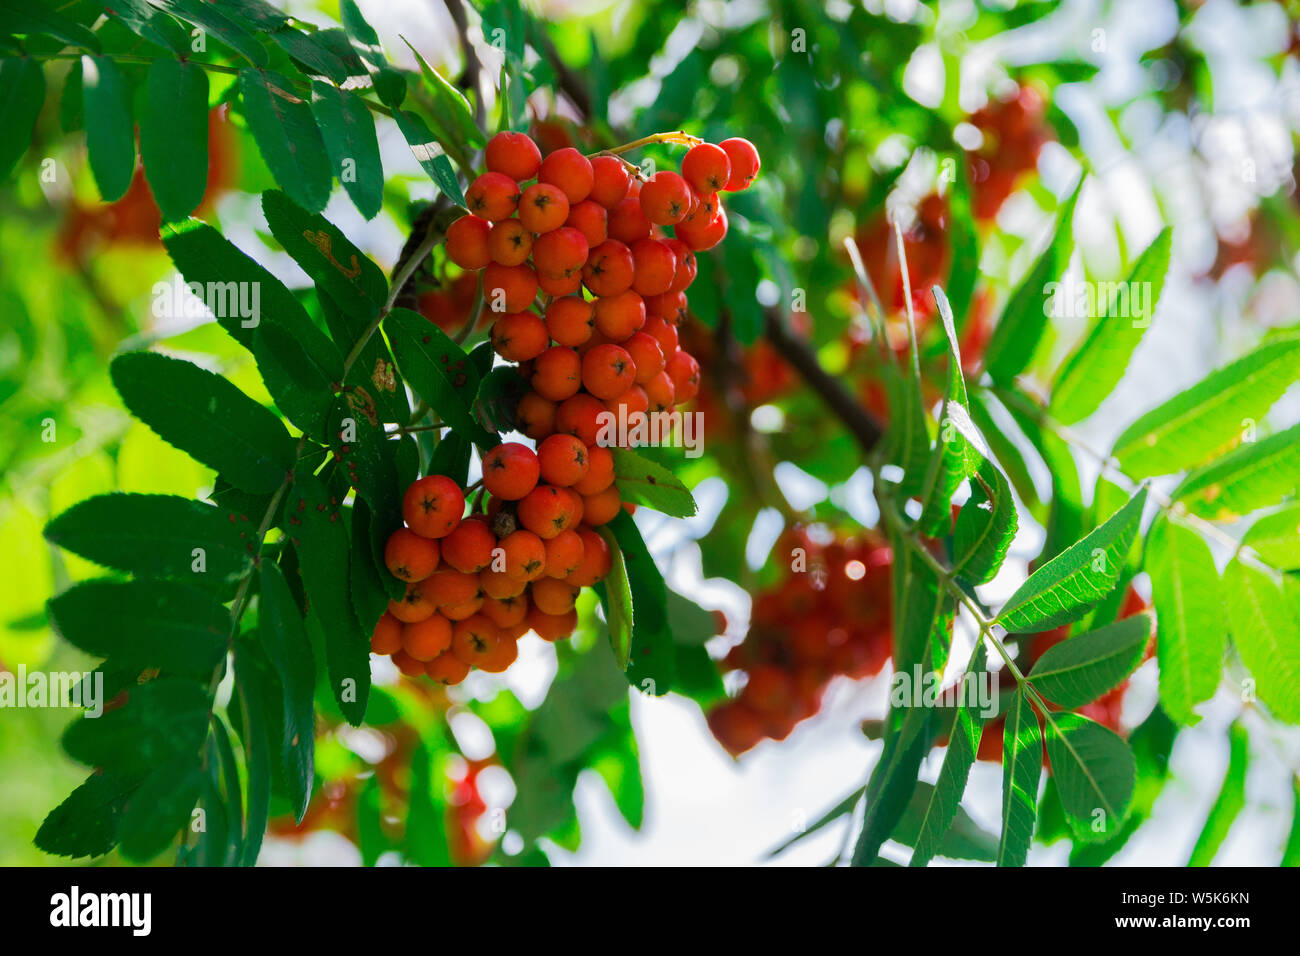 Rowan Berry Illustration High Resolution Stock Photography And Images Alamy Hd wallpaper rowan berries fruit plant